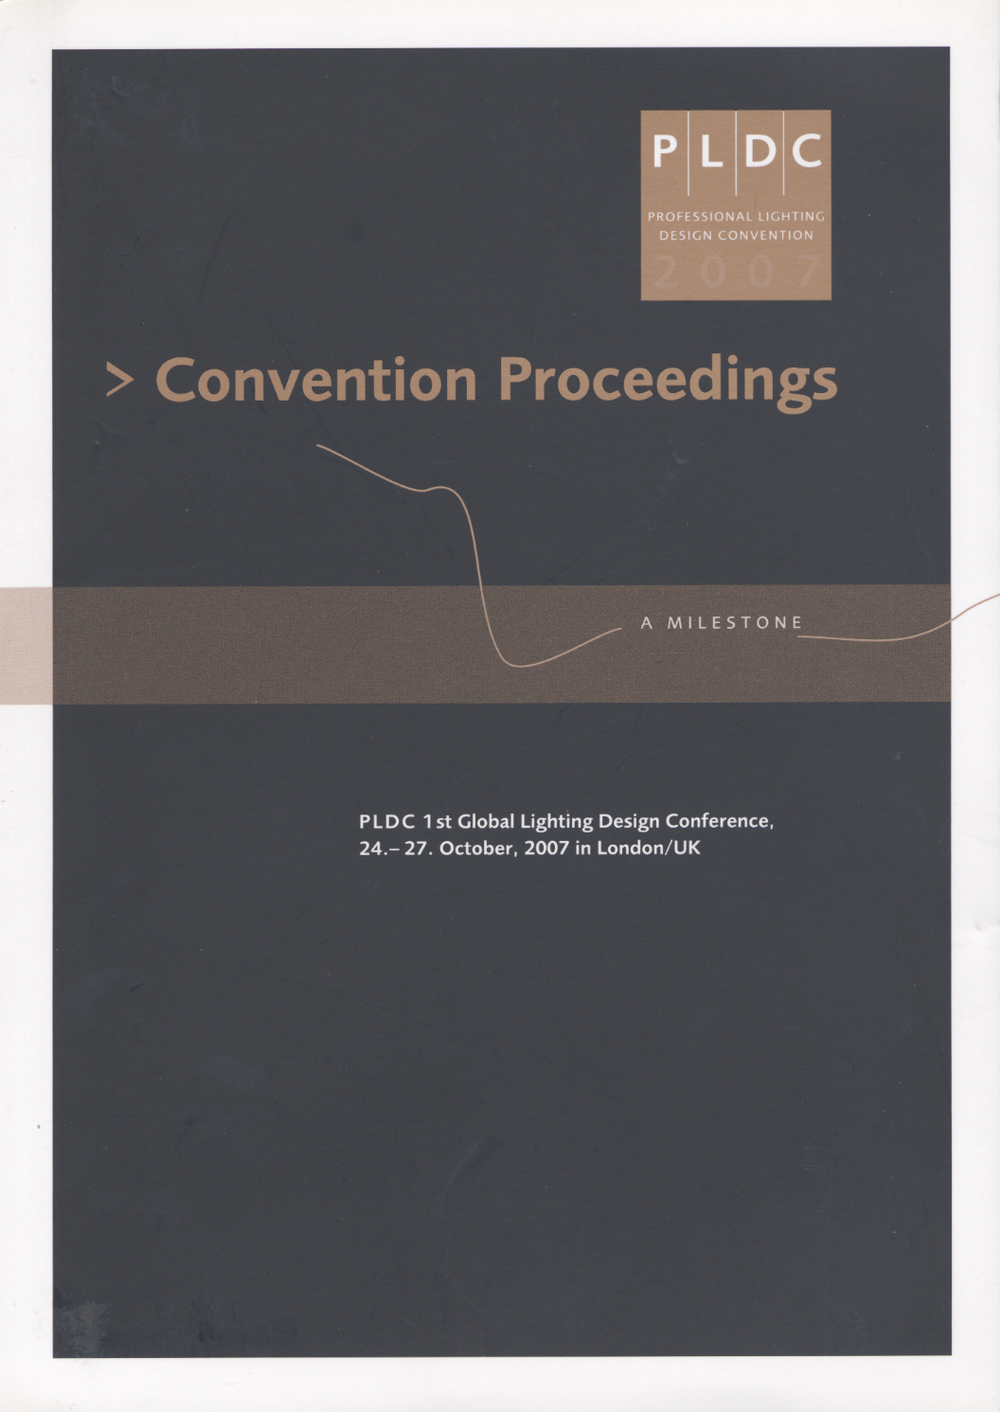 1 Convention Proceedings.jpg